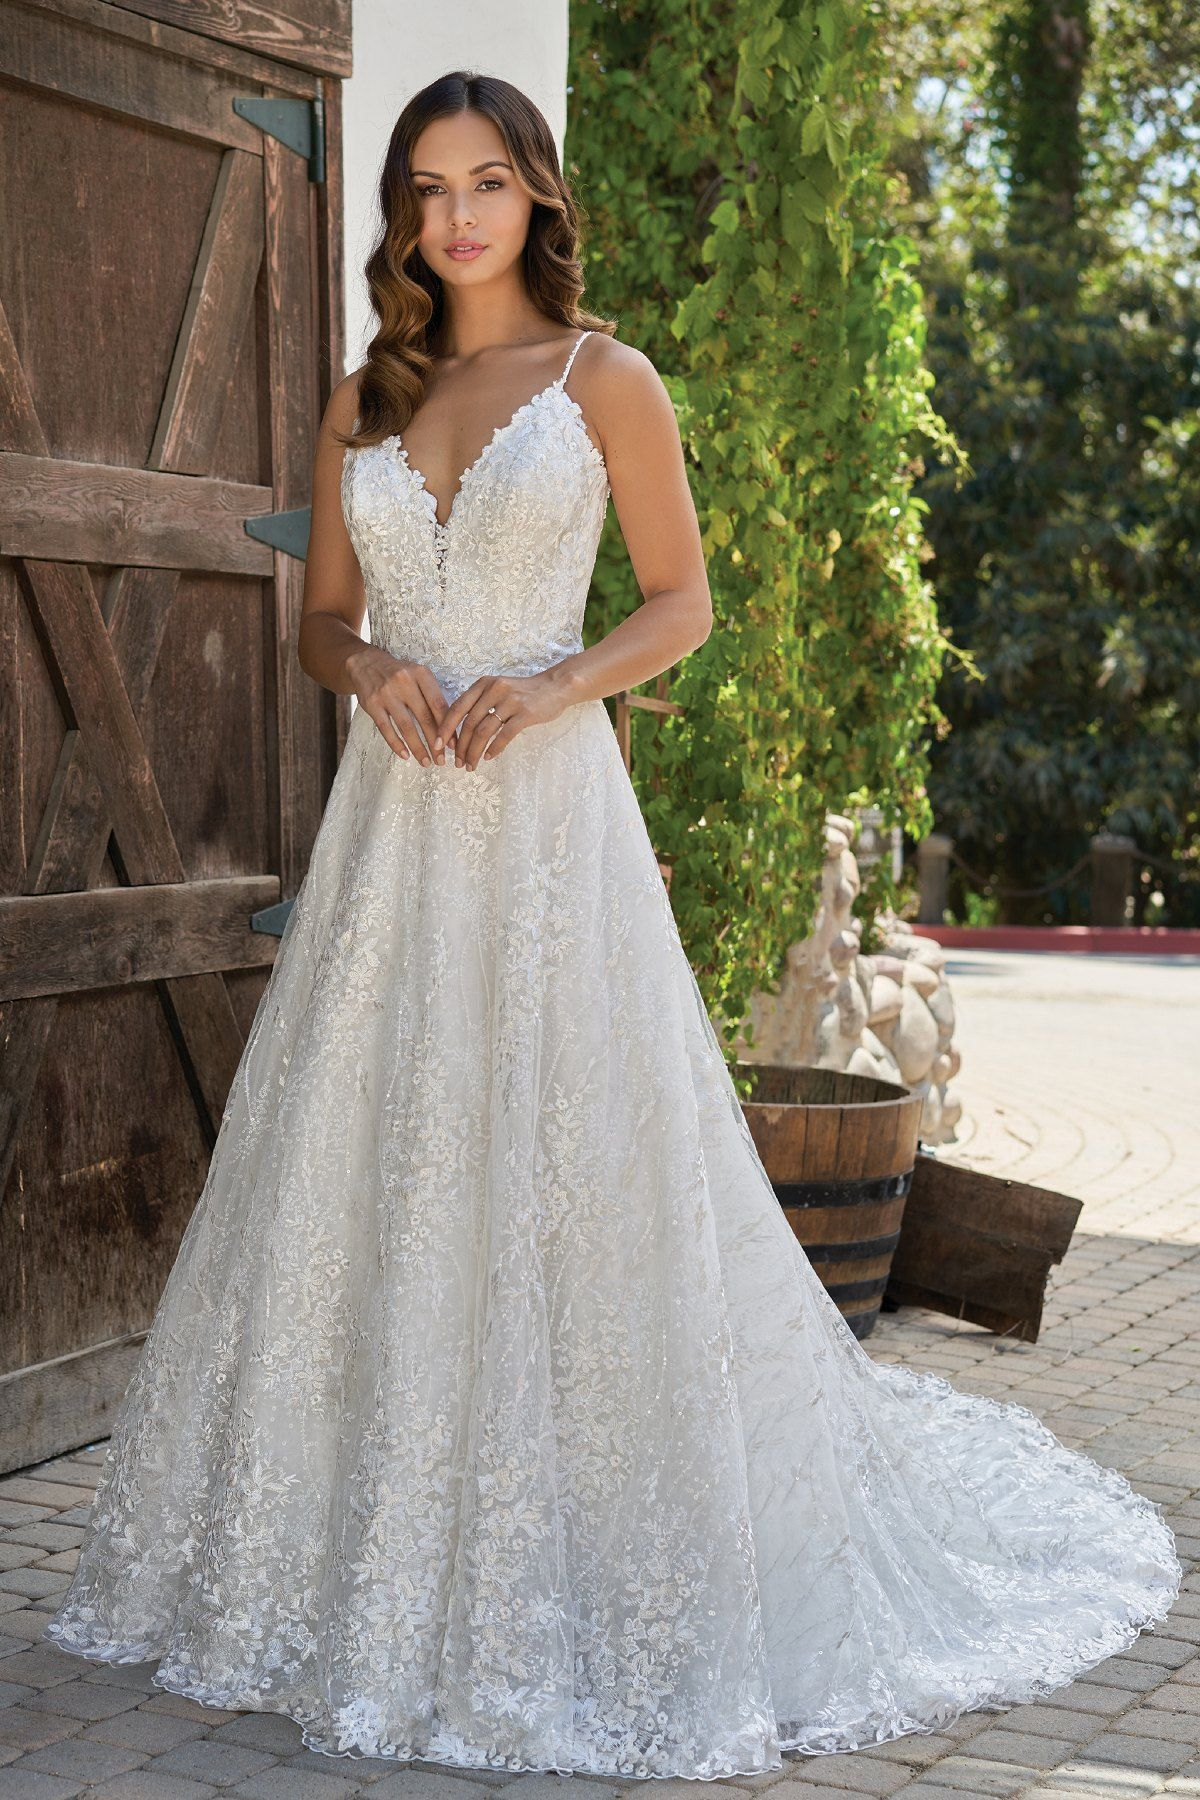 T212012 Romantic Embroidered Lace Wedding Dress With V Neckline Embroidered Lace Wedding Dress Beautiful Wedding Dress Lace Wedding Dresses [ 1800 x 1200 Pixel ]